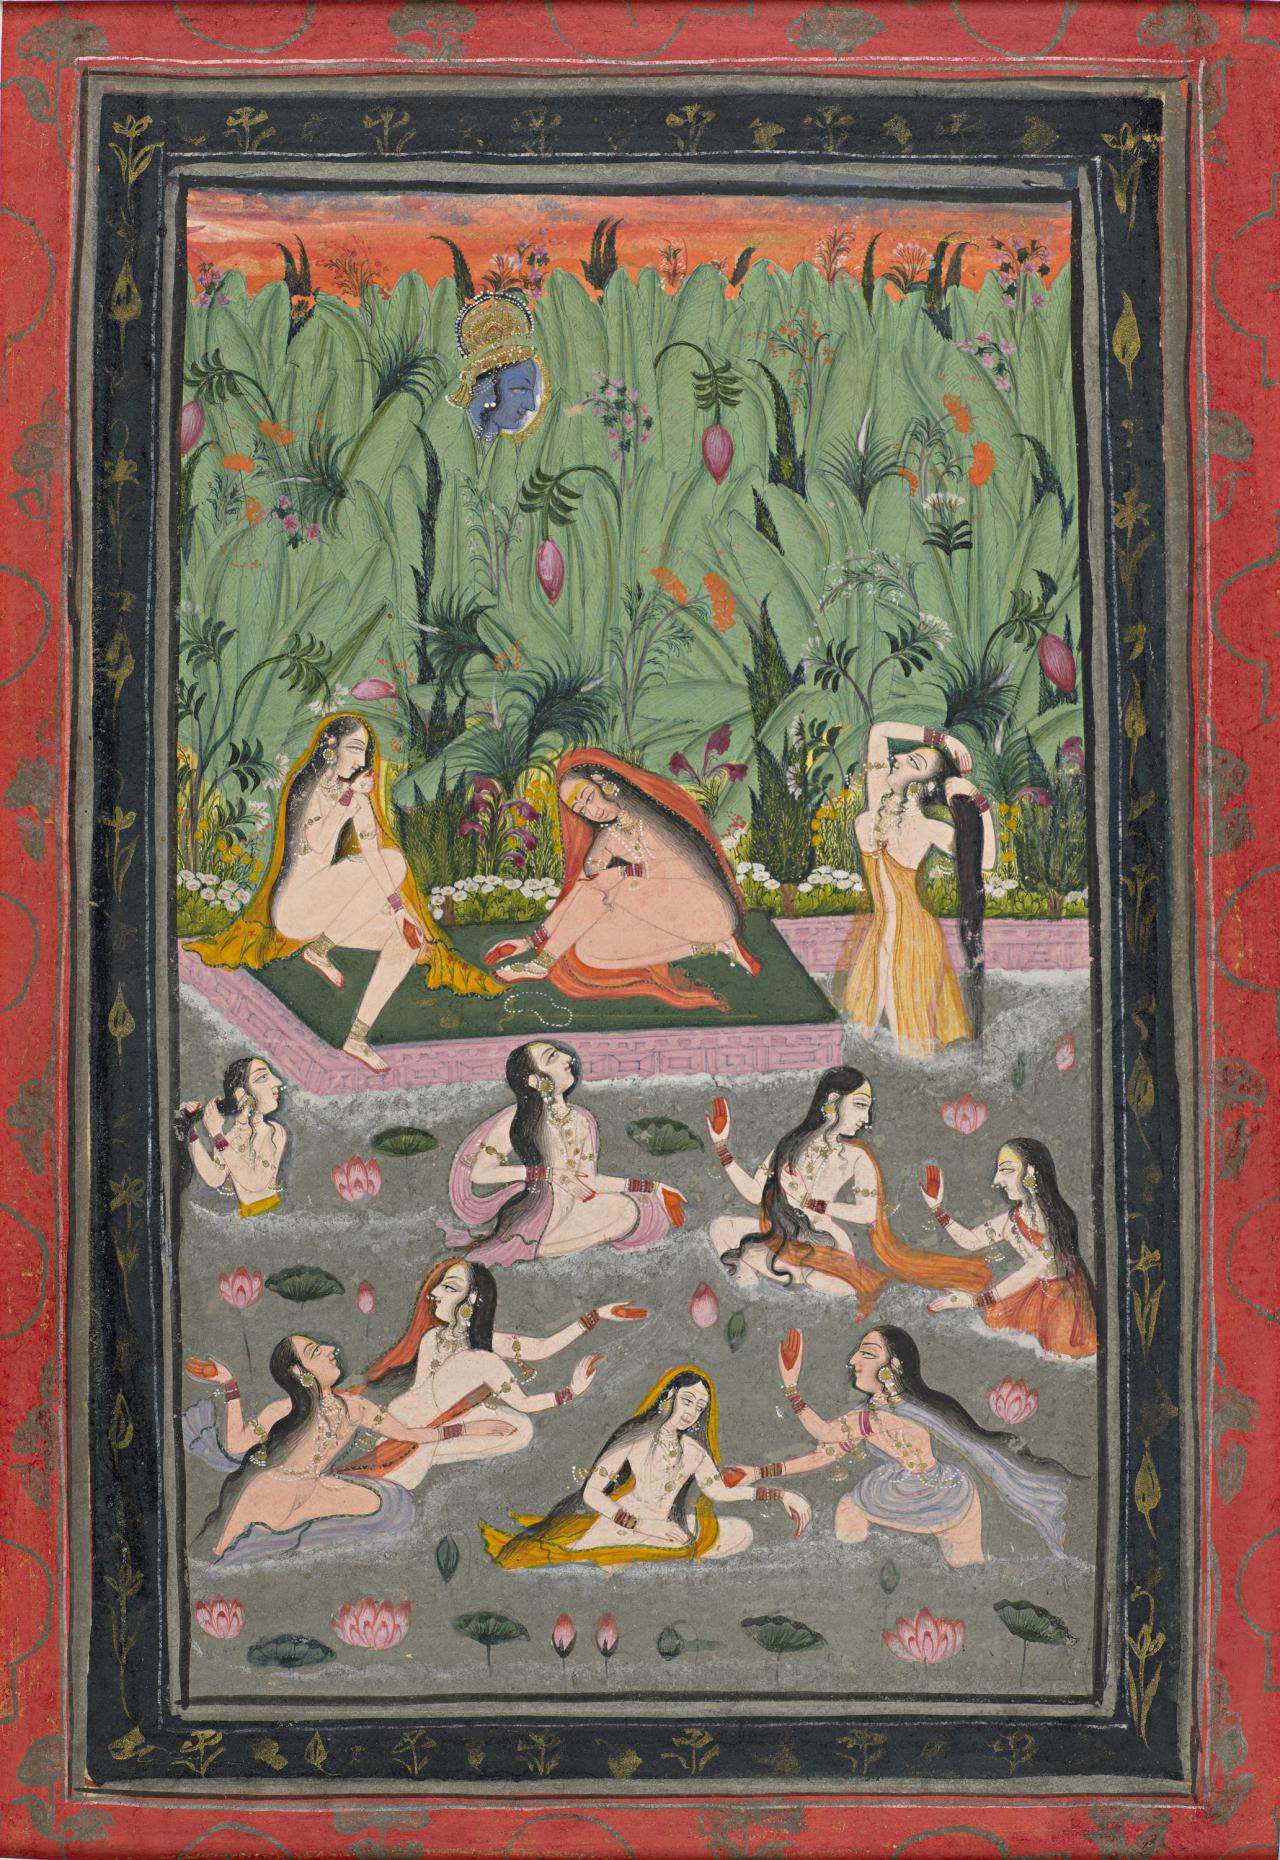 Krishna spying on the gopis bathing